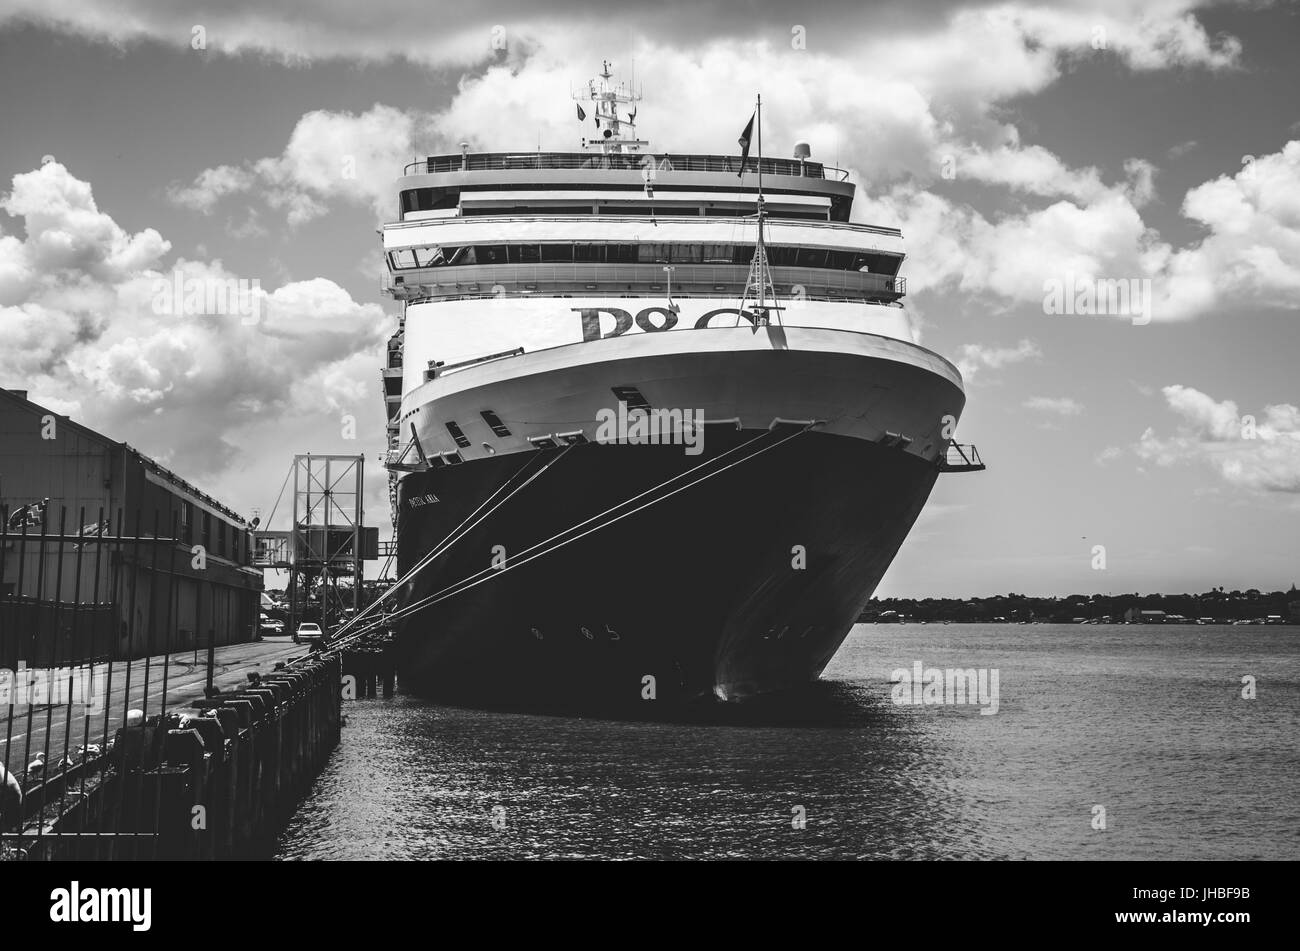 Big Cruise Ship in Auckland, New Zealand - Stock Image